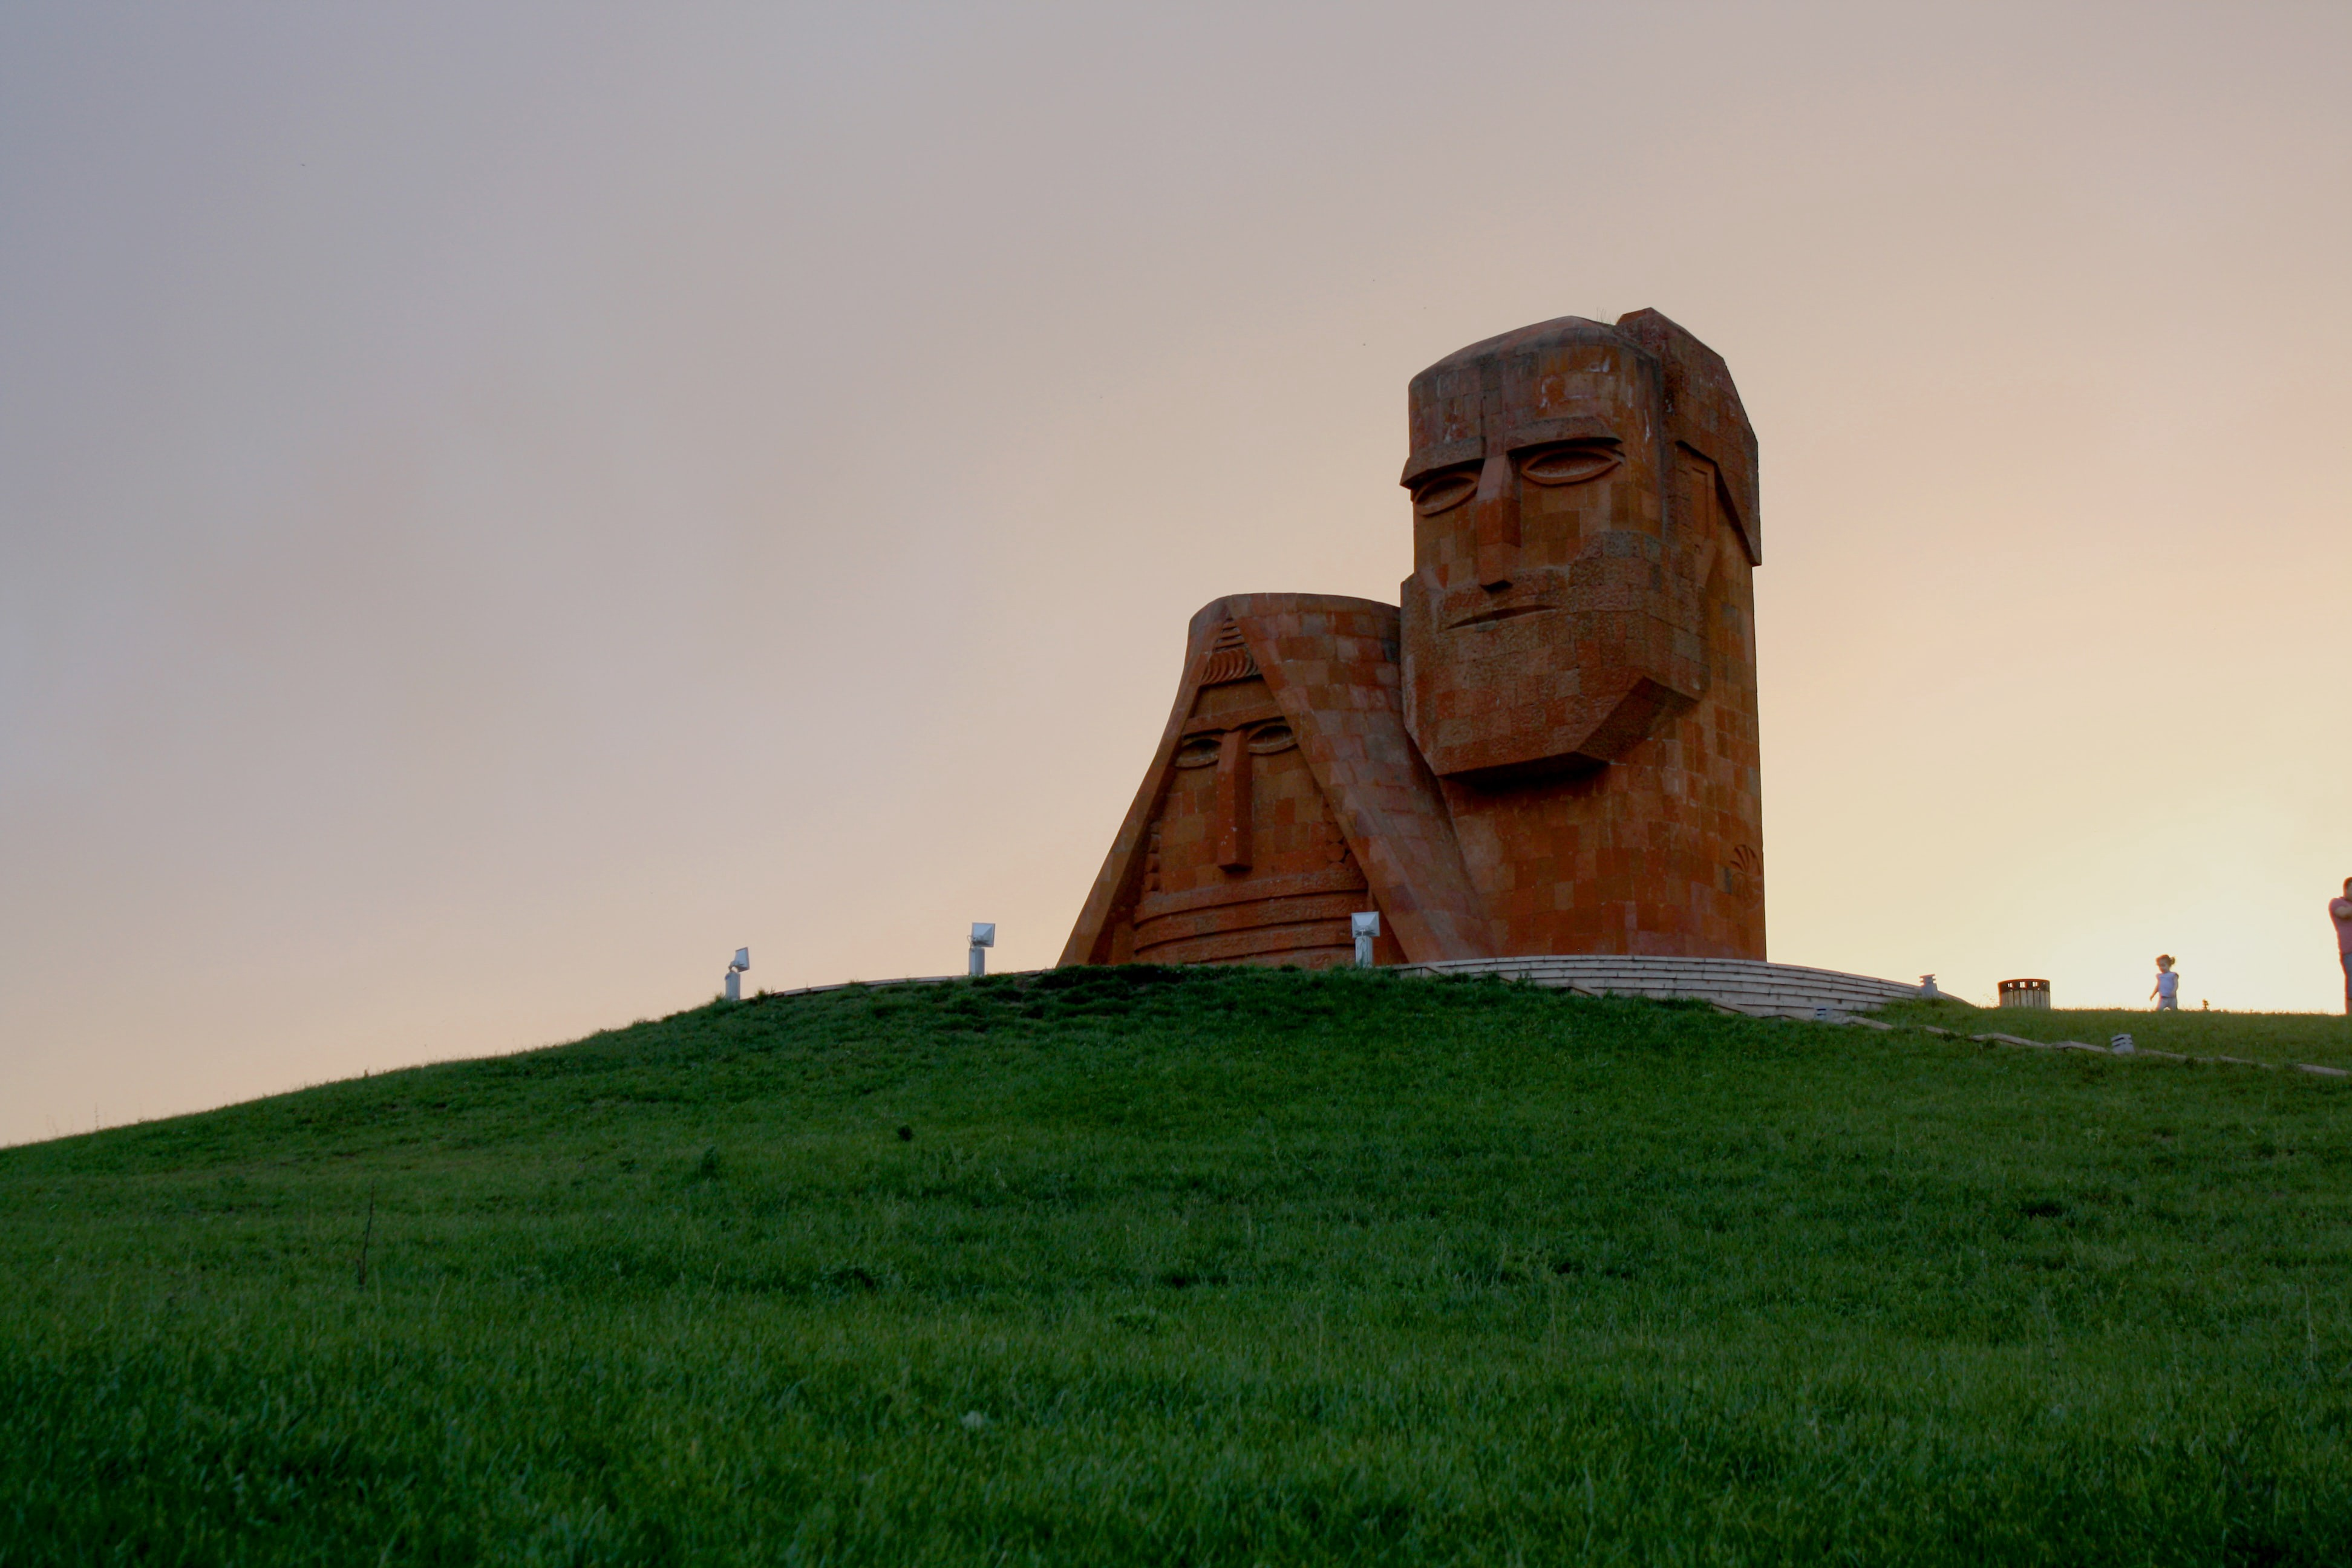 Statues of the heads of Armenian grandma and grandpa in Nagorno-Karabakh (Artsakh)